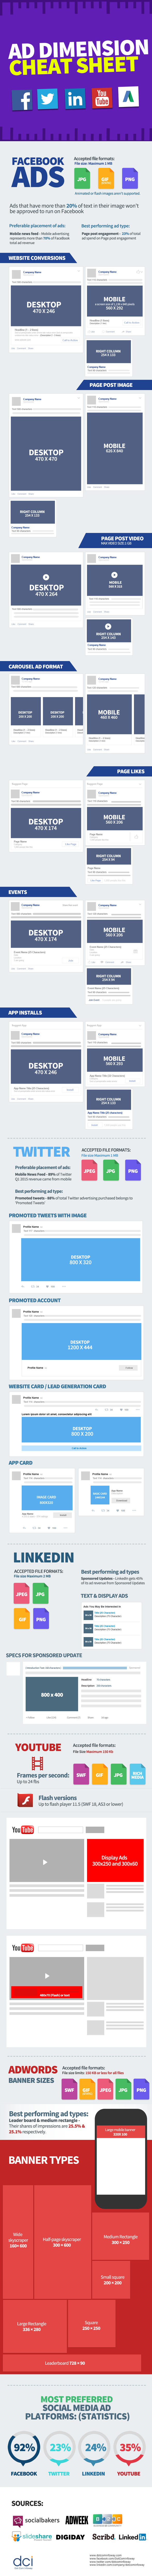 Searching for social media ad sizes? This complete cheat sheet includes 36 sizes for the top platforms, plus tips on best performers, file sizes, and more! See the blog for info on Pinterest and Instagram too.